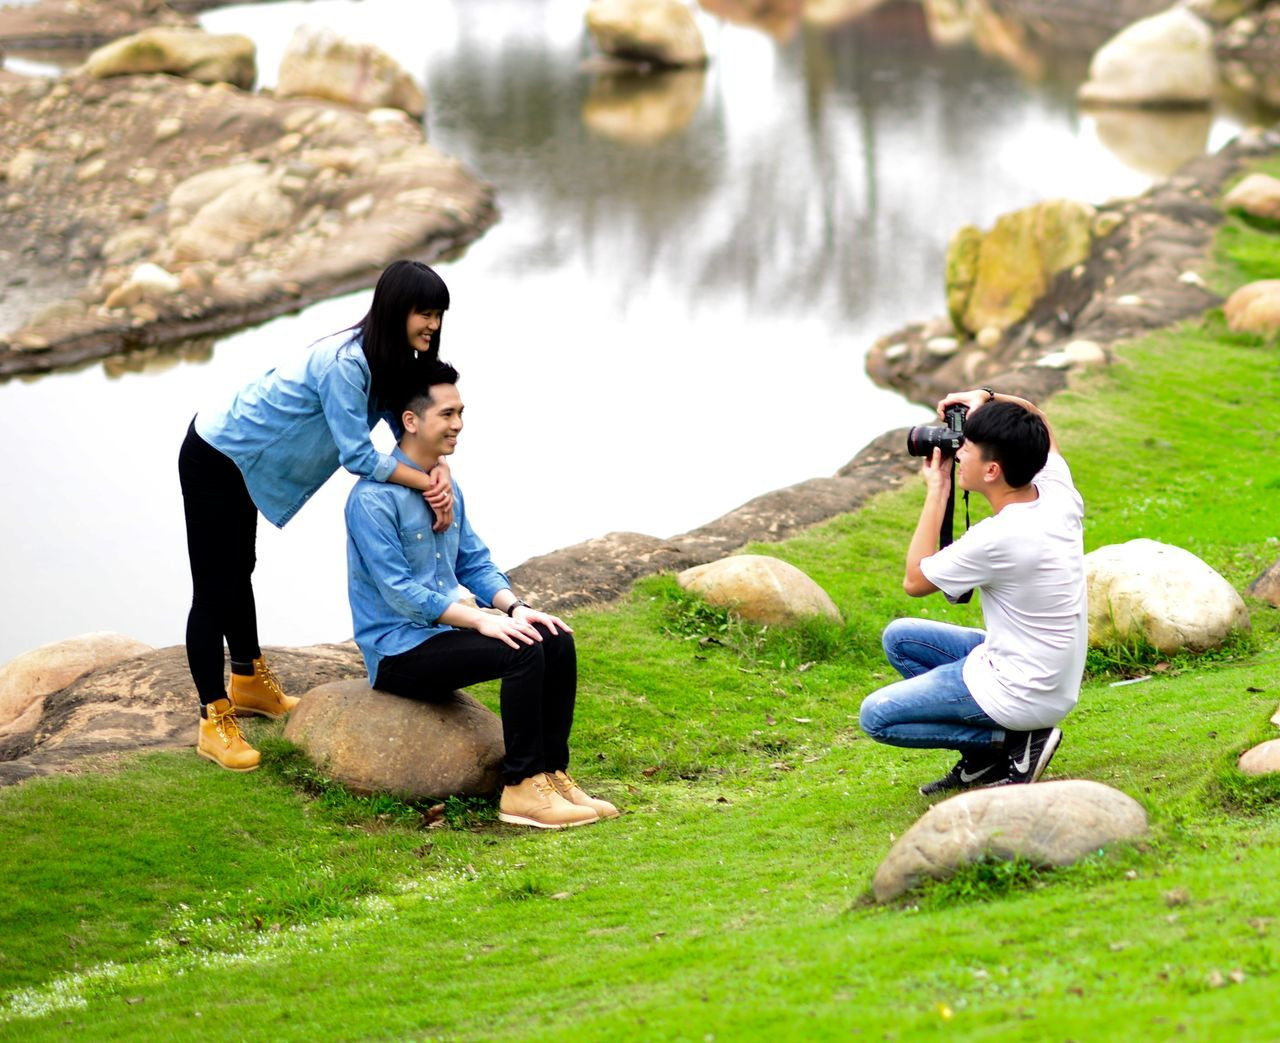 real people, two people, rock - object, leisure activity, sitting, togetherness, full length, water, casual clothing, grass, day, lifestyles, nature, women, outdoors, photography themes, men, camera - photographic equipment, photographing, beauty in nature, young women, friendship, young adult, people